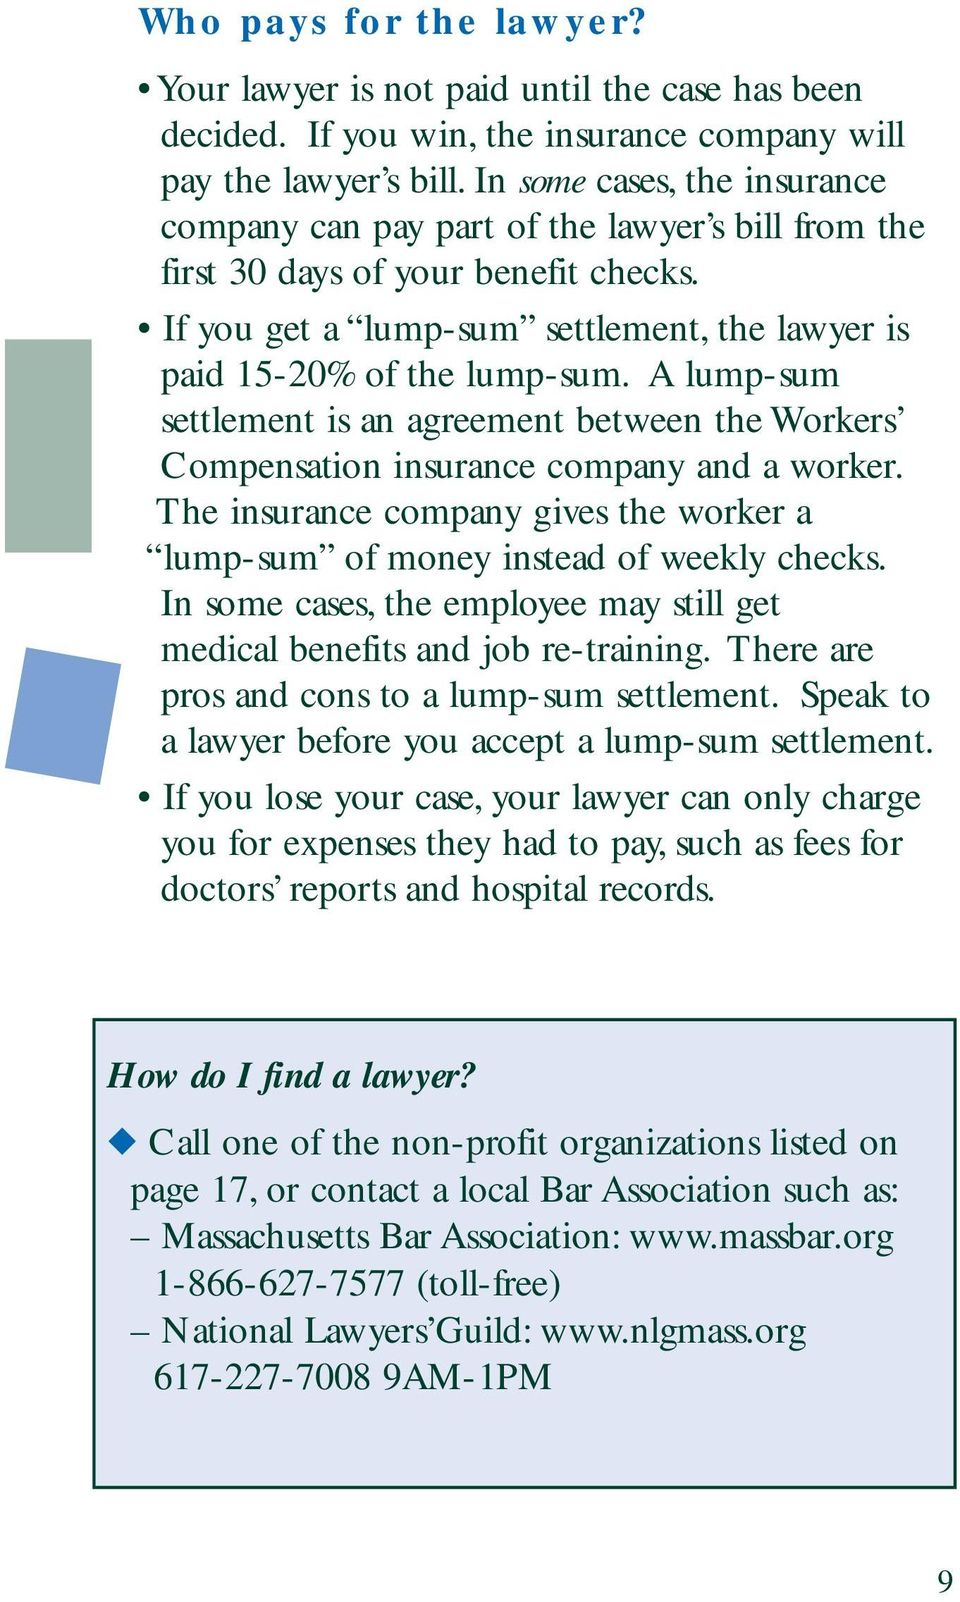 A lump-sum settlement is an agreement between the Workers Compensation insurance company and a worker. The insurance company gives the worker a lump-sum of money instead of weekly checks.